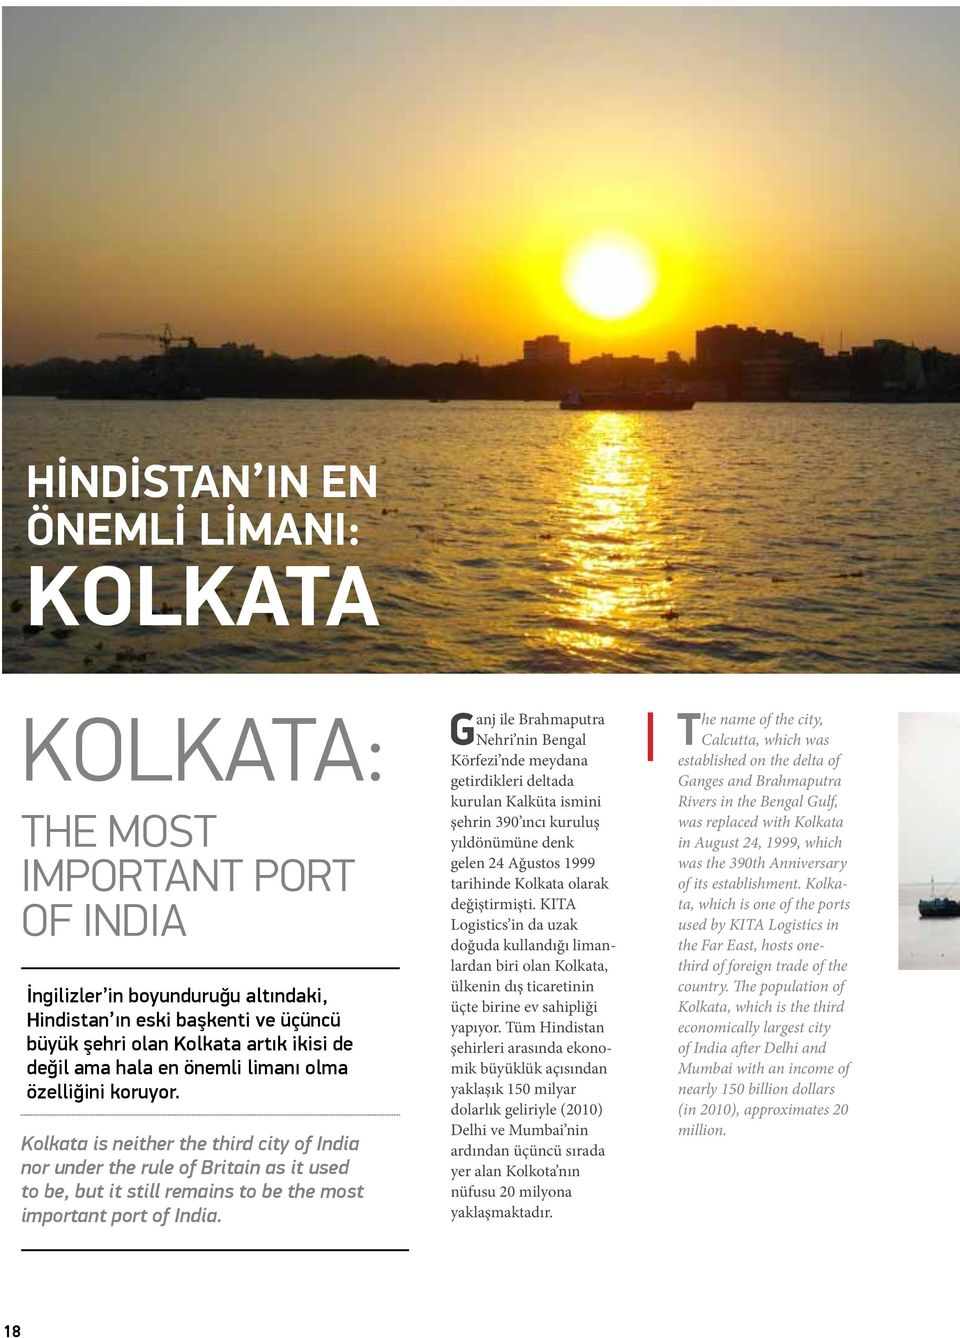 Kolkata is neither the third city of India nor under the rule of Britain as it used to be, but it still remains to be the most important port of India.